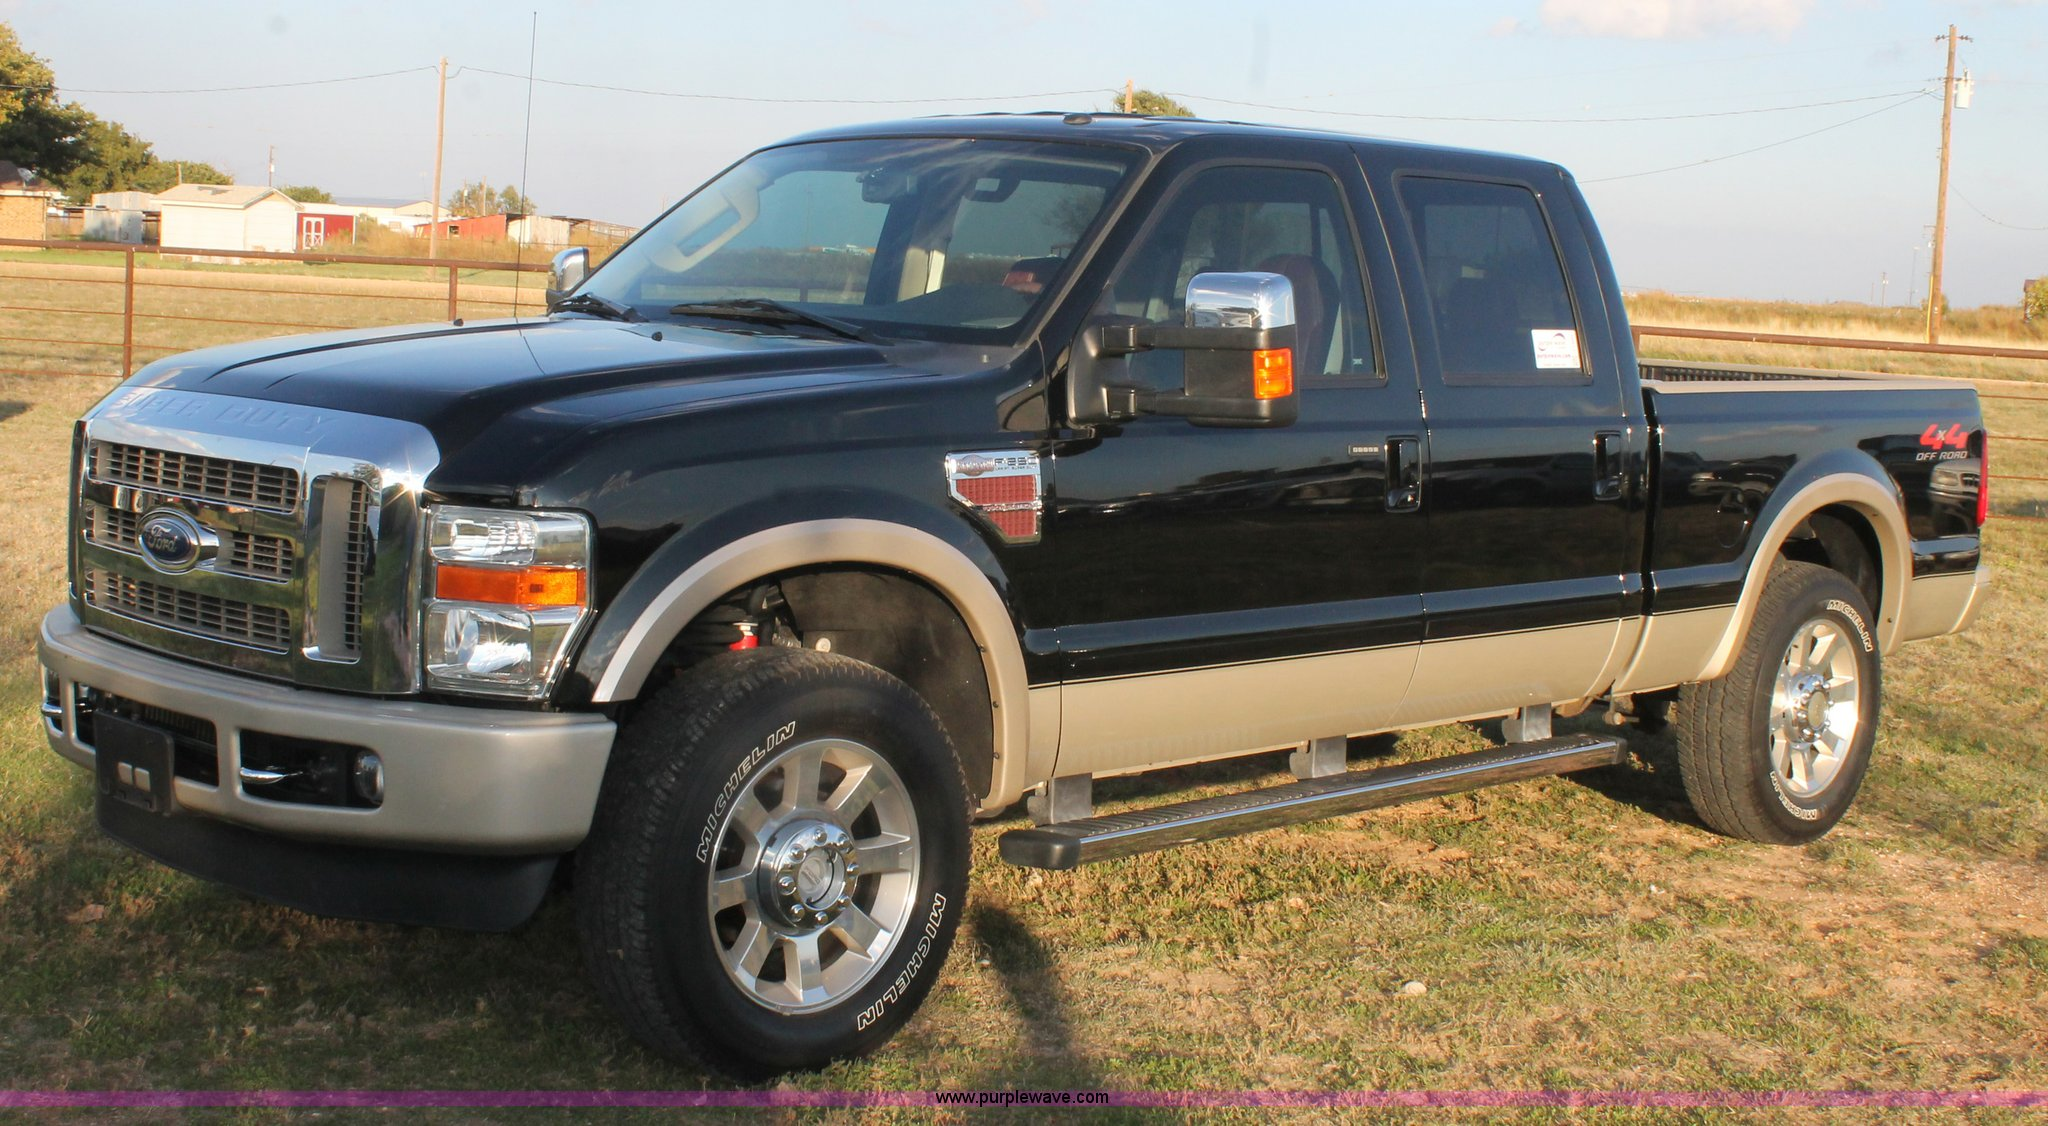 2009 Ford F250 King Ranch Crew Cab pickup truck